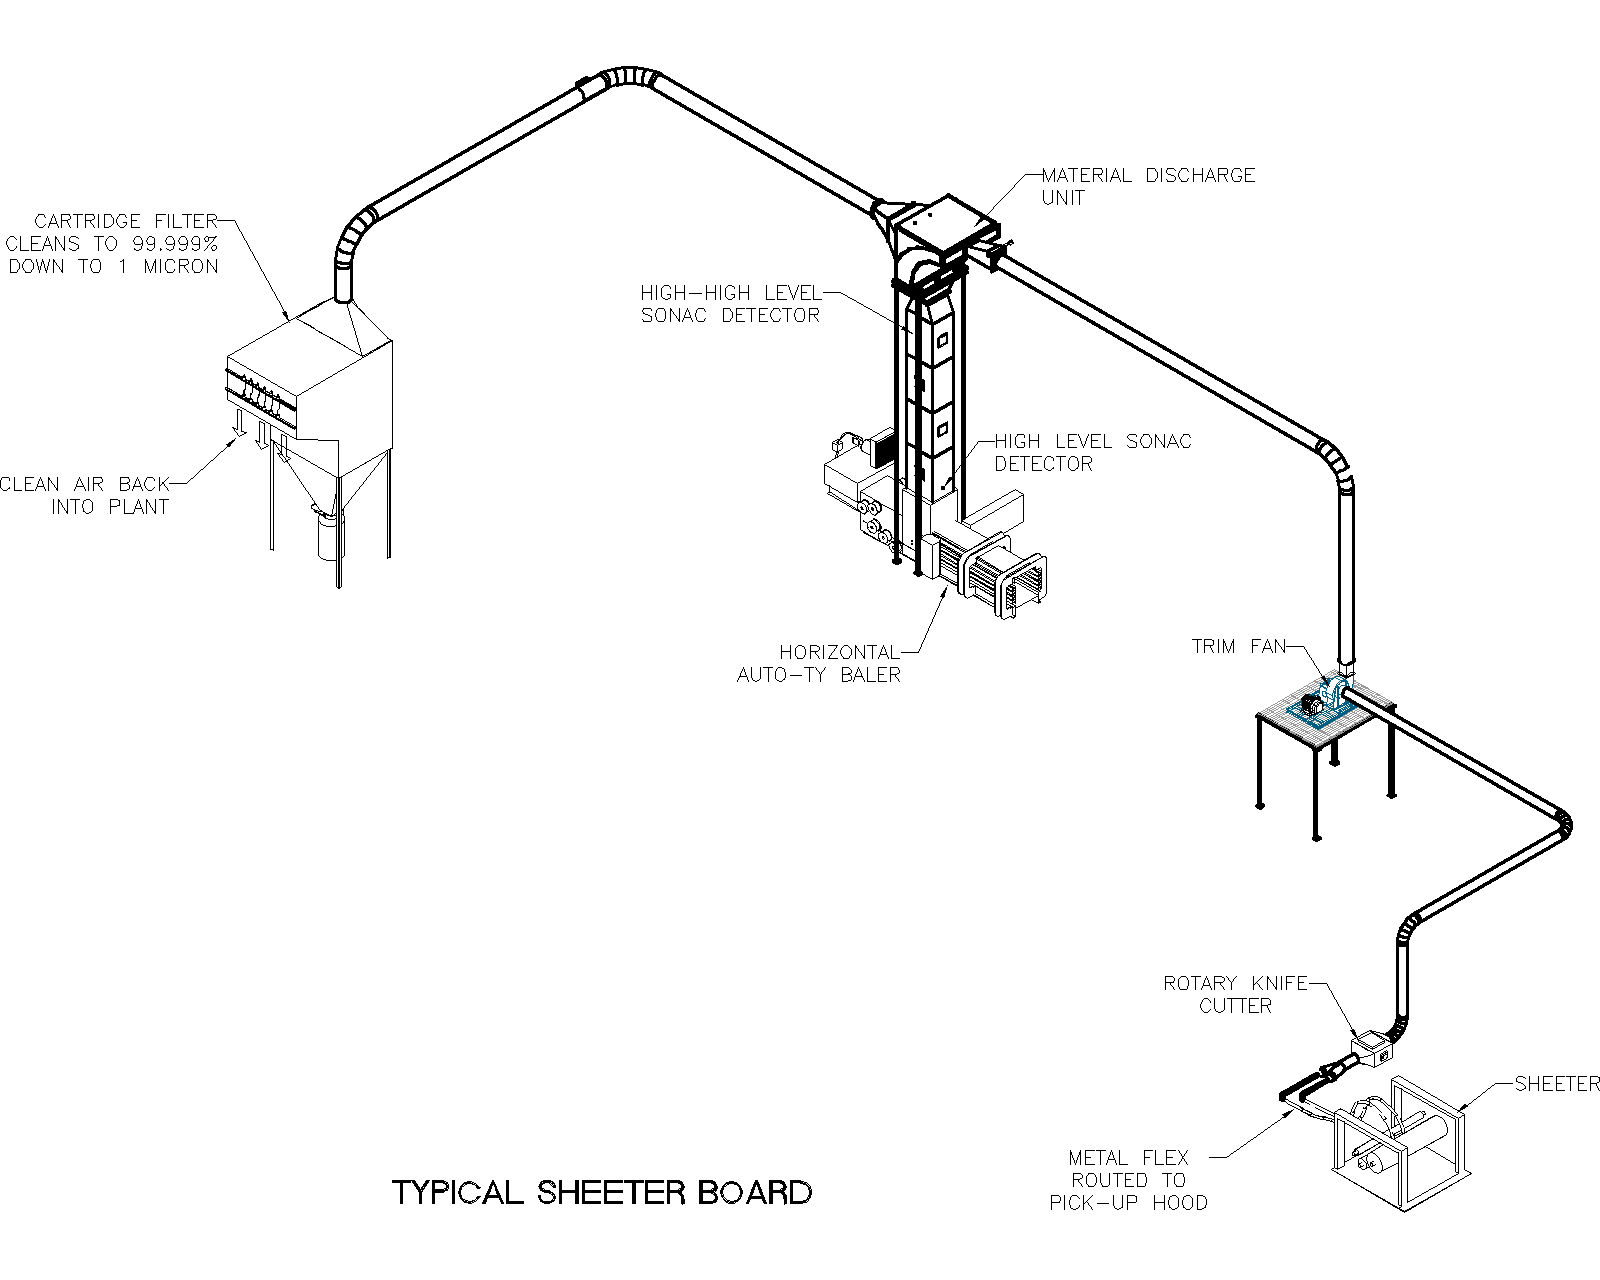 Pneumatic Conveying Systems Sheeter Board Air Systems Design Inc